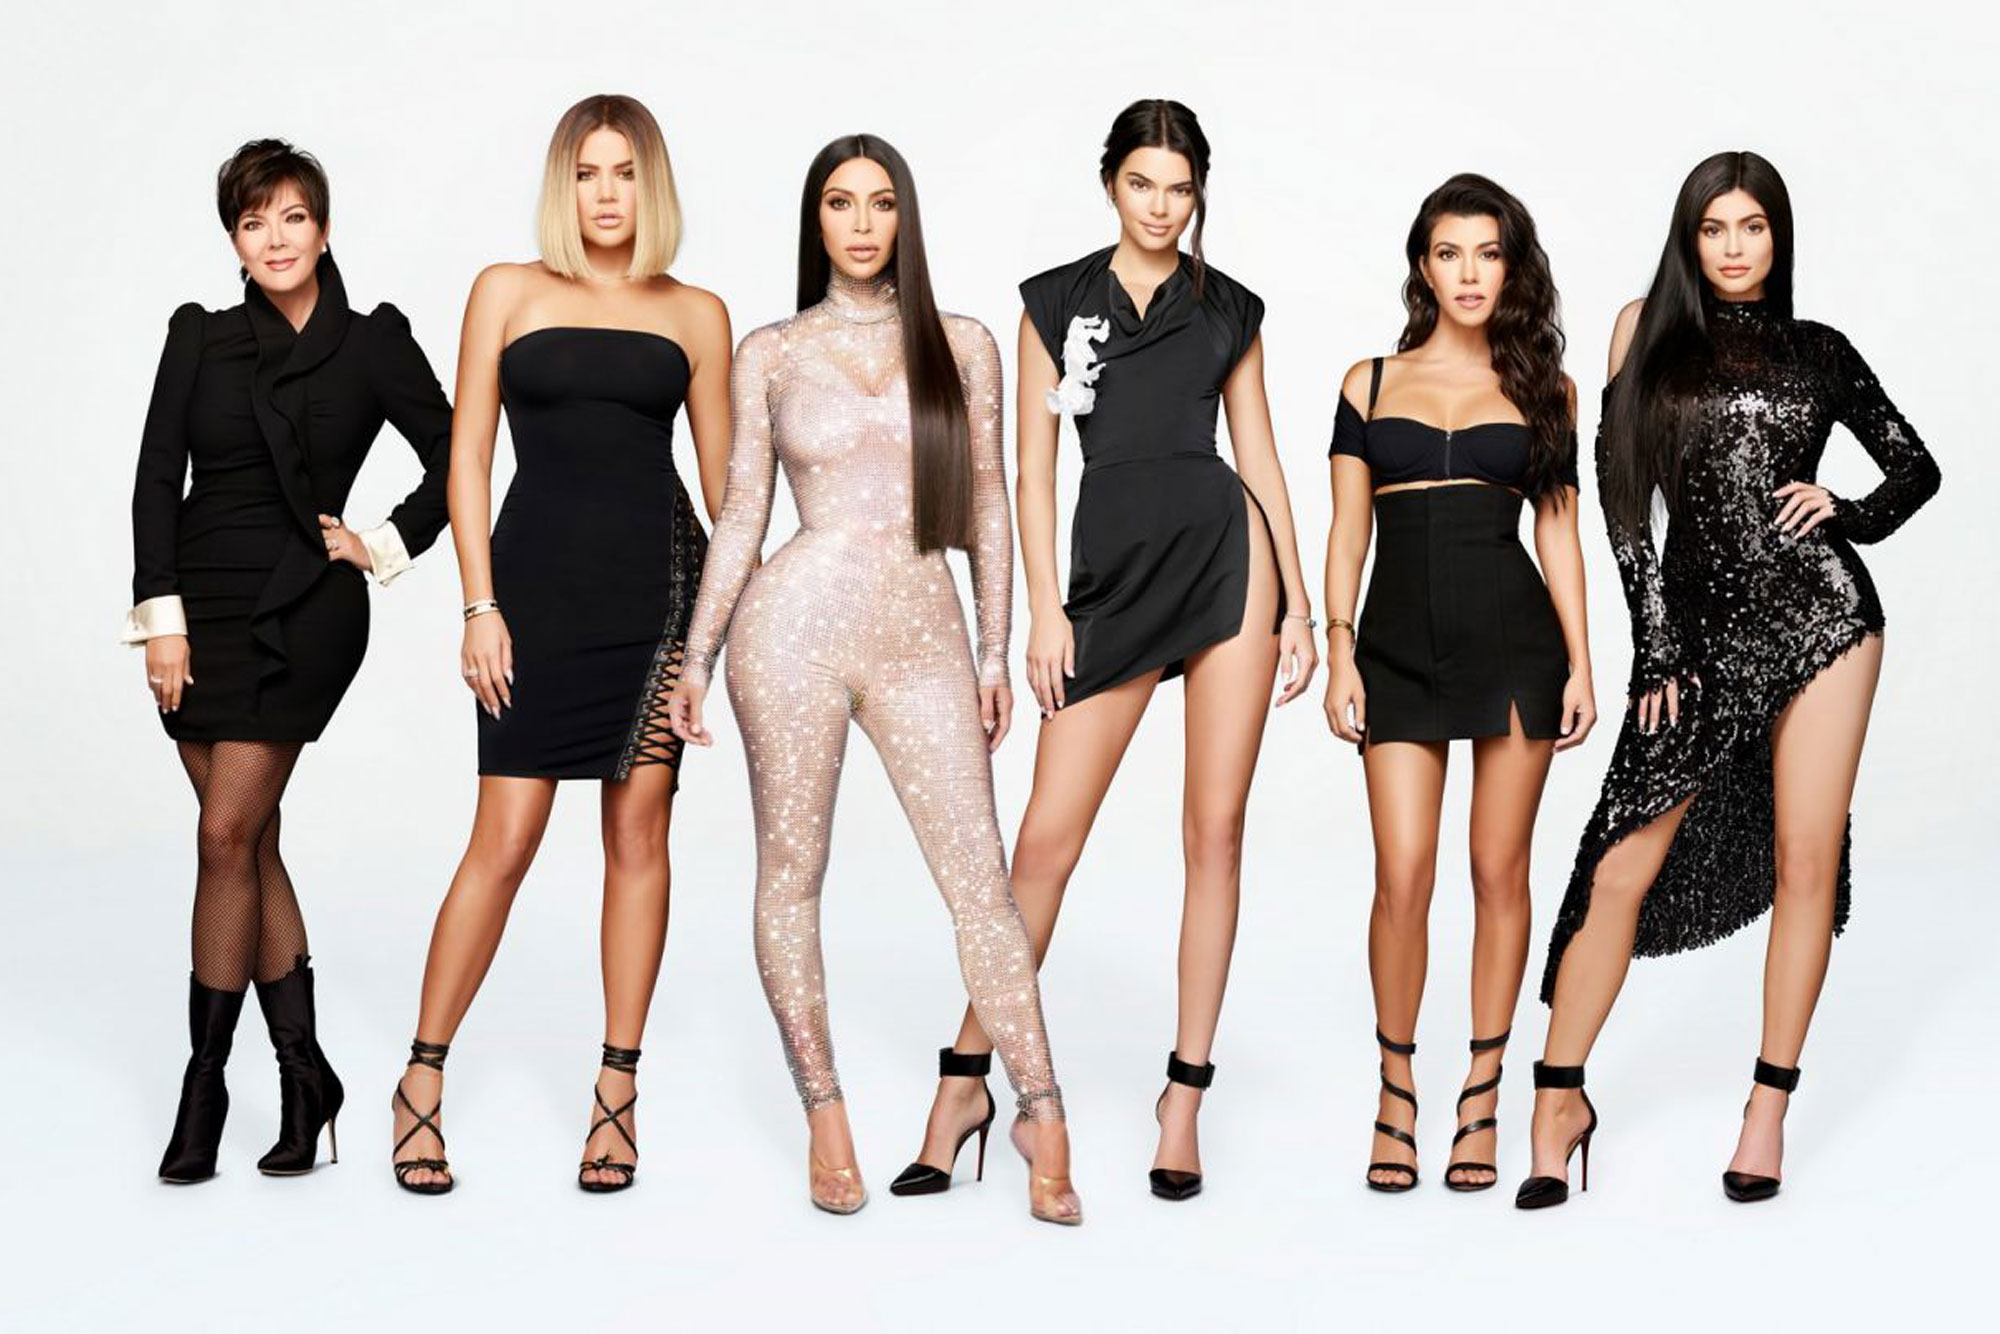 'Keeping Up With the Kardashians' cancellation mostly due to money